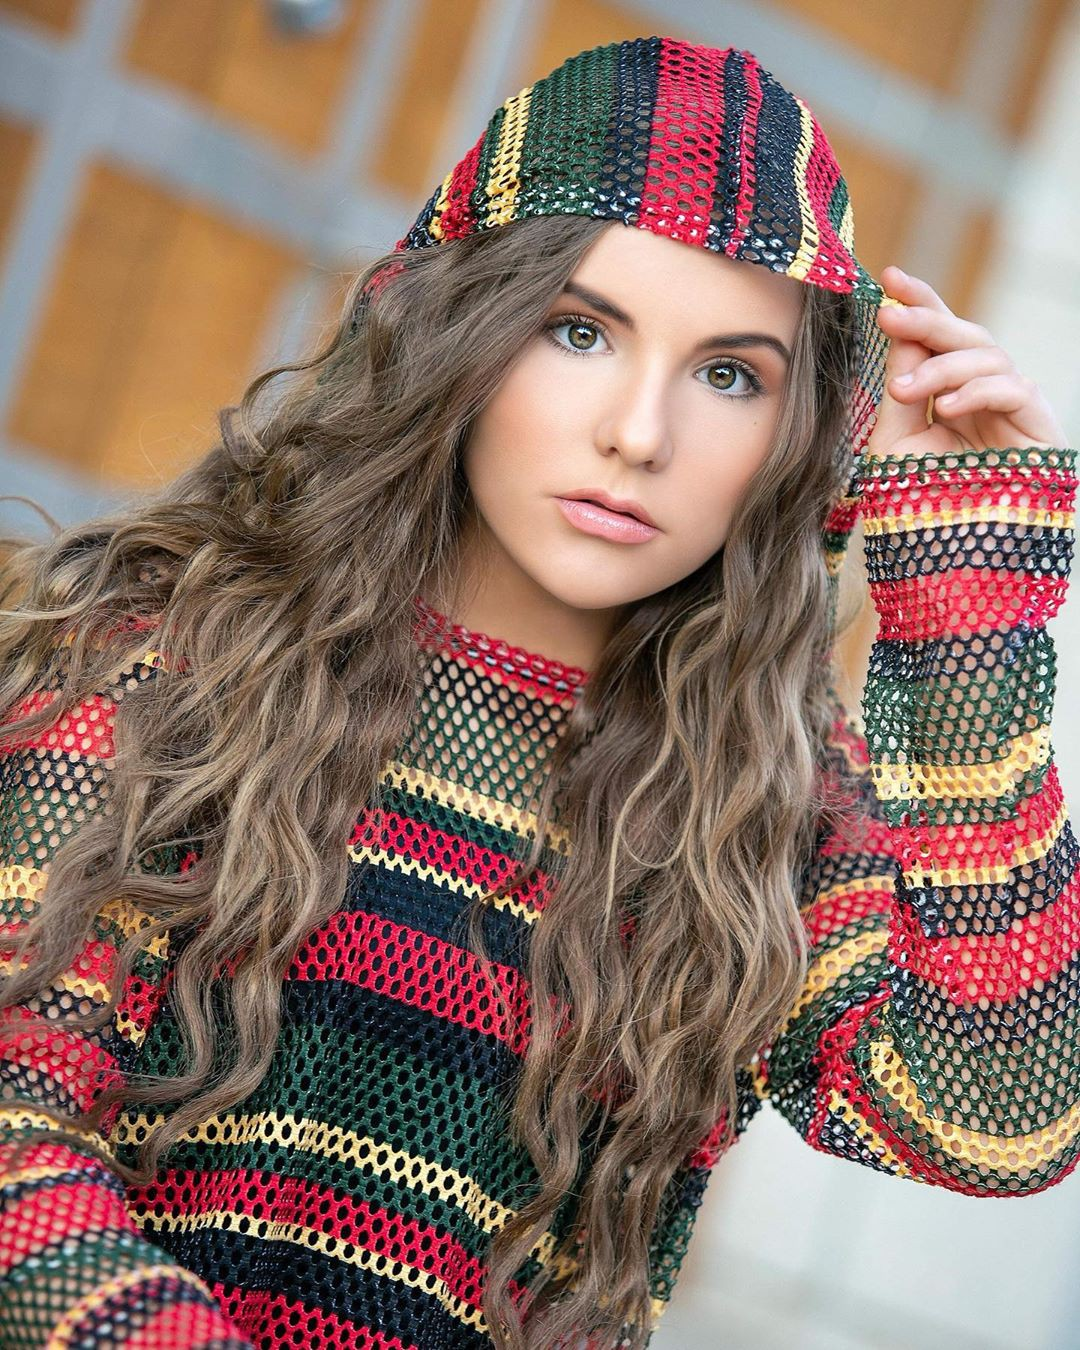 Piper Rockelle Beanie Colour Outfit Ideas 2020, Lips Smile